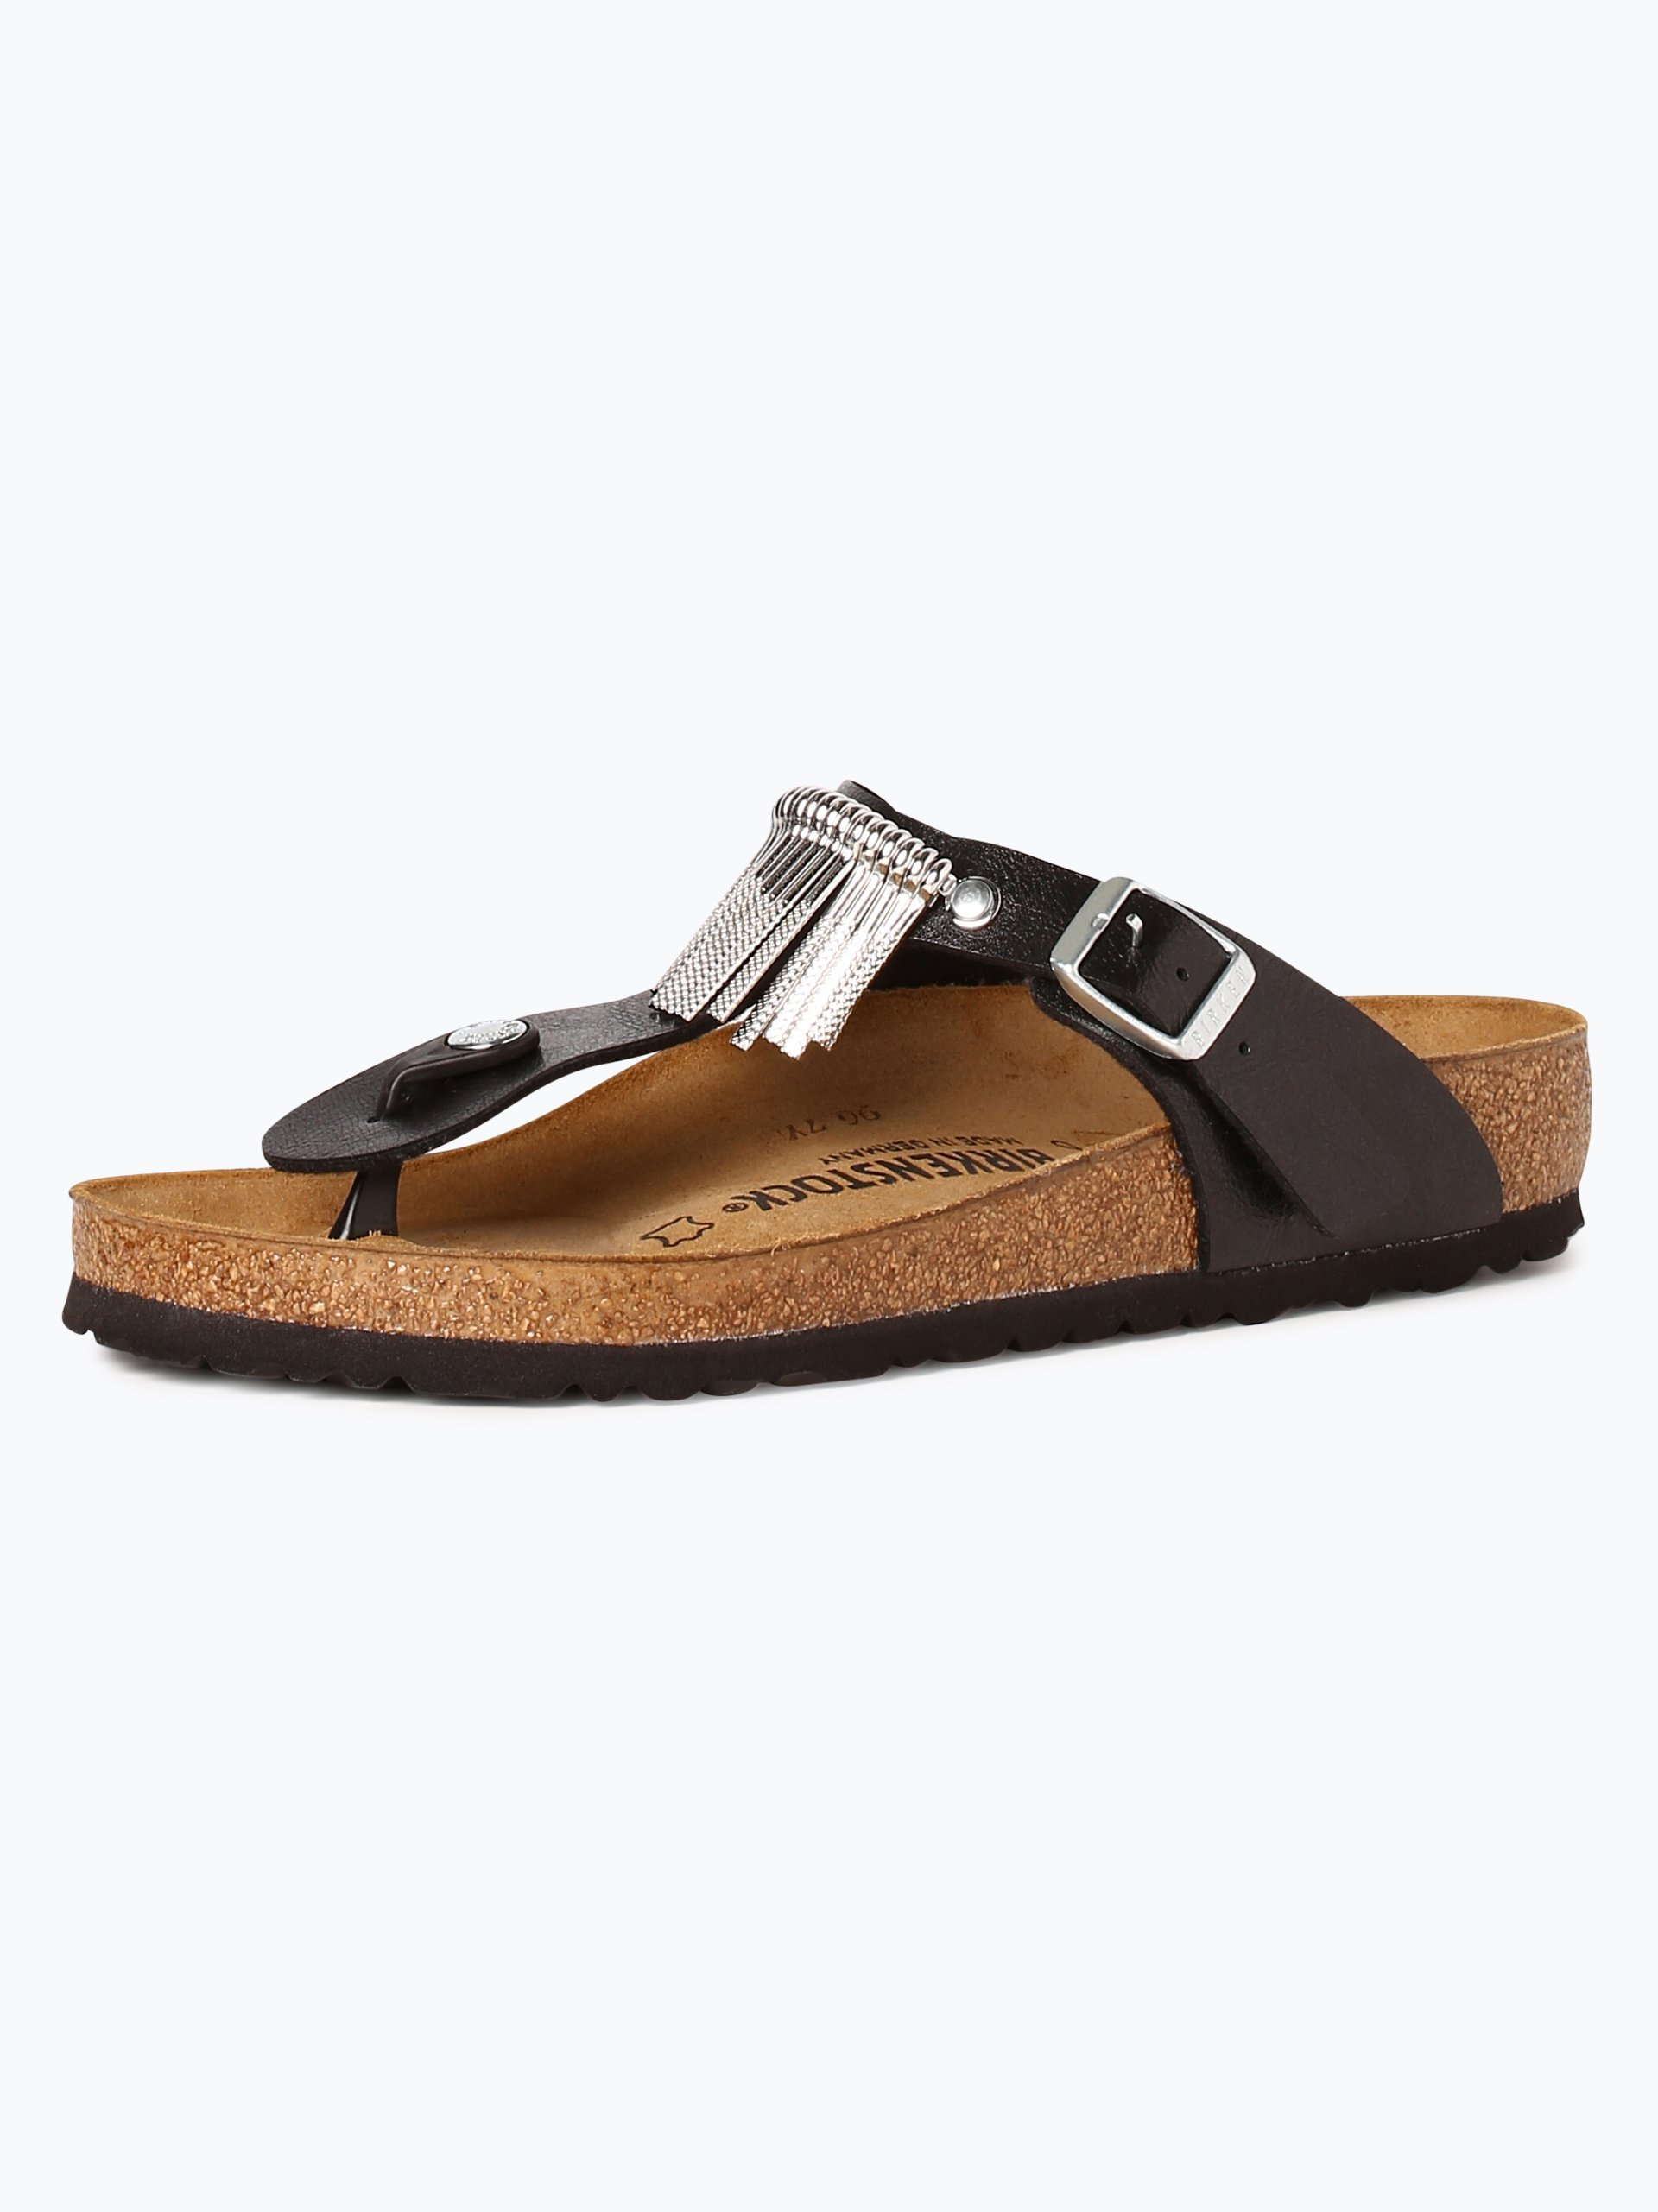 birkenstock damen sandalen mit leder anteil gizeh fringe schwarz silber uni online kaufen. Black Bedroom Furniture Sets. Home Design Ideas